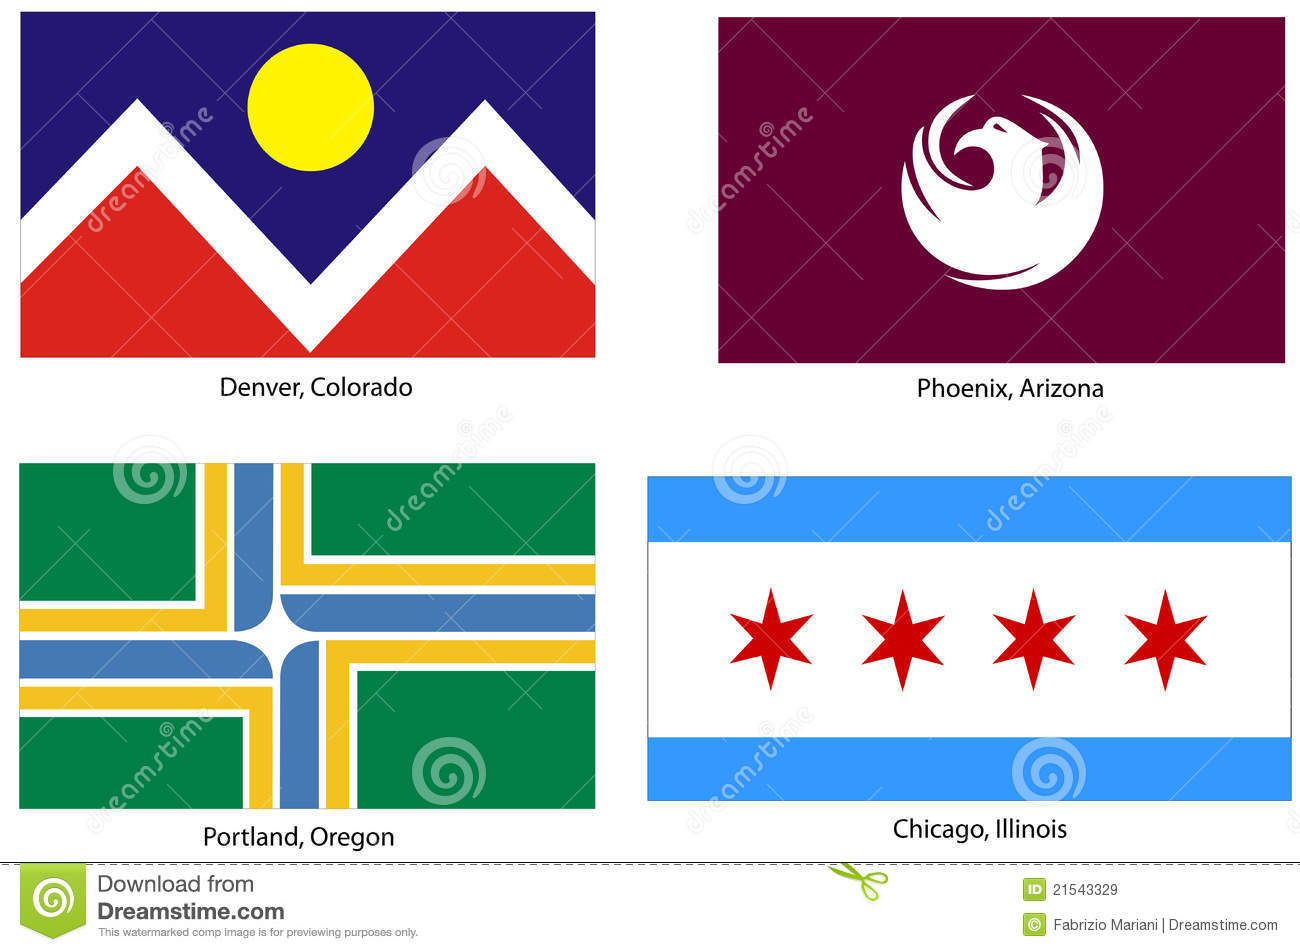 Official Chicago Flag Vector Usa city flags setOfficial Chicago Flag